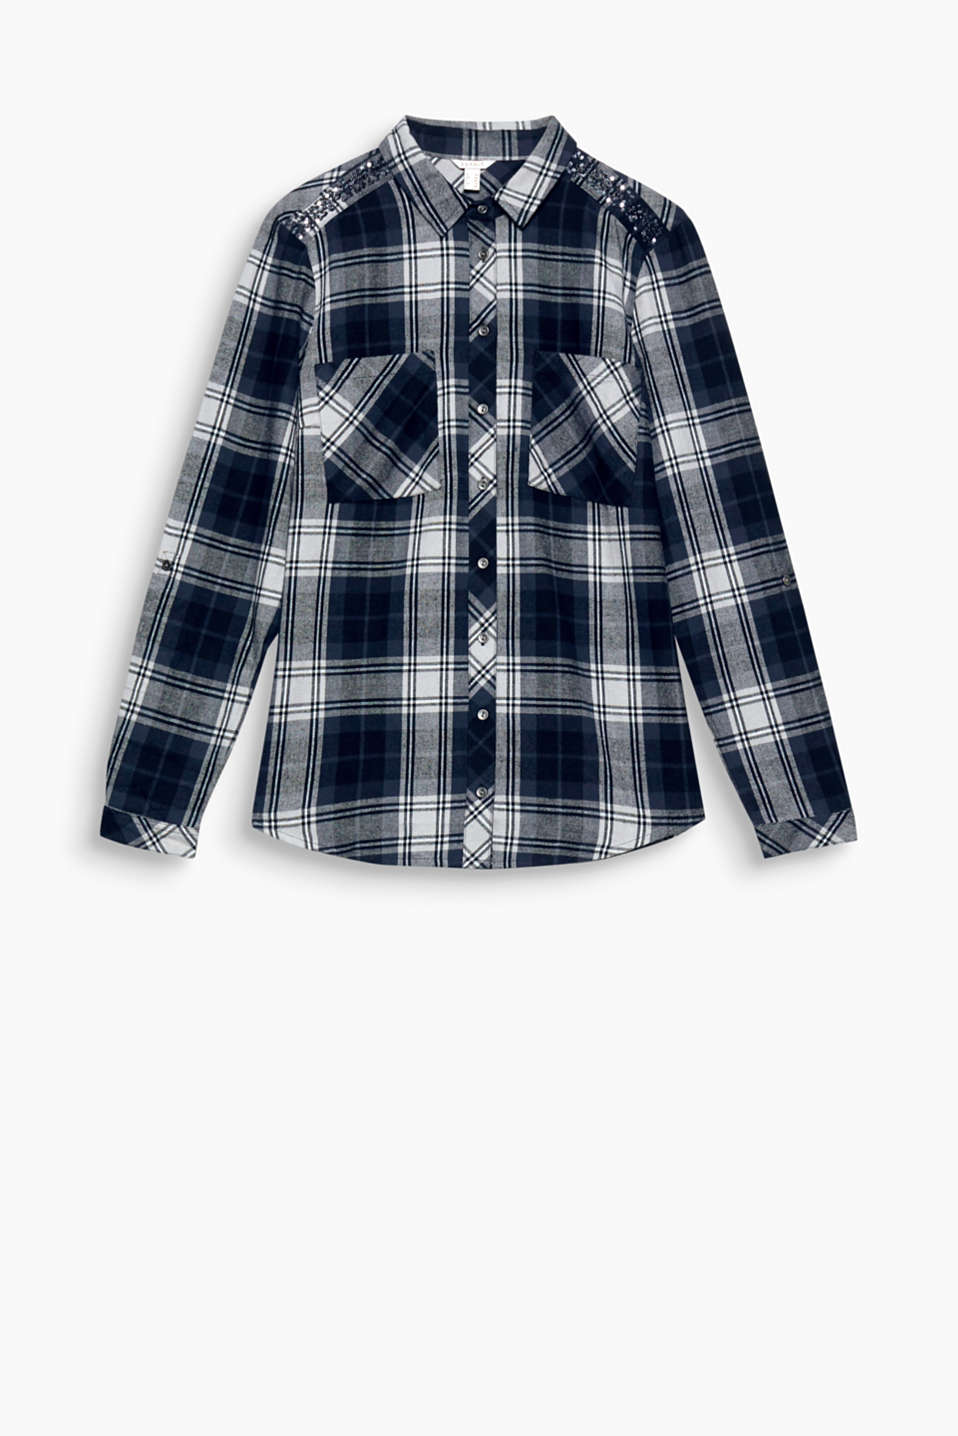 Flannel goes glamour: the sequin embellishment on the shoulders gives this soft flannel shirt lush lashings of luxury!